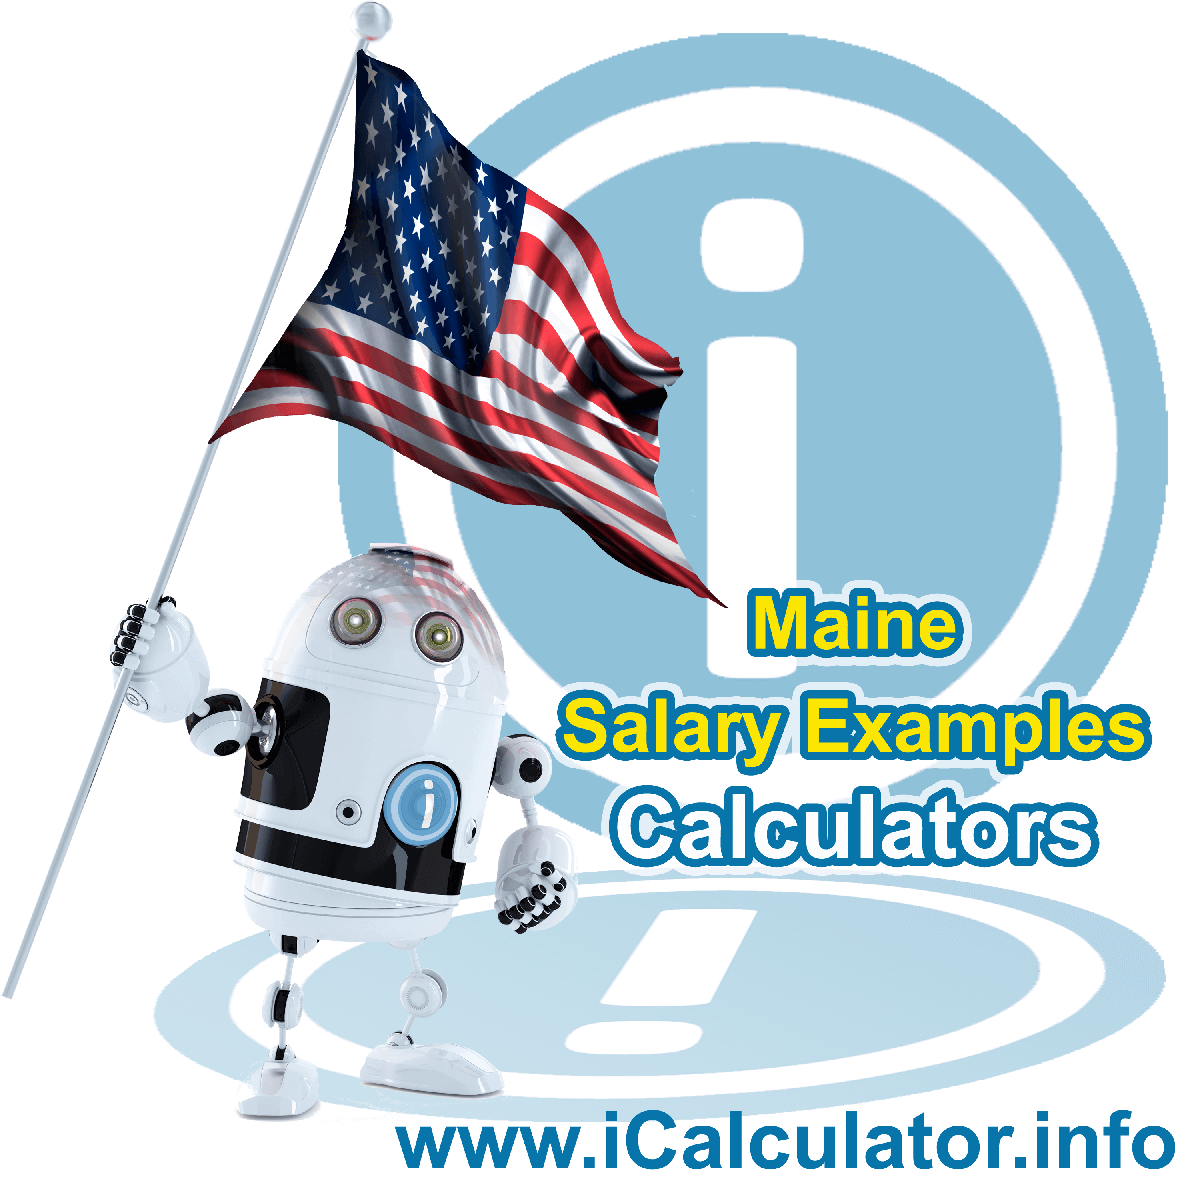 Maine Salary Example for $250.00 in 2020 | iCalculator | $250.00 salary example for employee and employer paying Maine State tincome taxes. Detailed salary after tax calculation including Maine State Tax, Federal State Tax, Medicare Deductions, Social Security, Capital Gains and other income tax and salary deductions complete with supporting Maine state tax tables